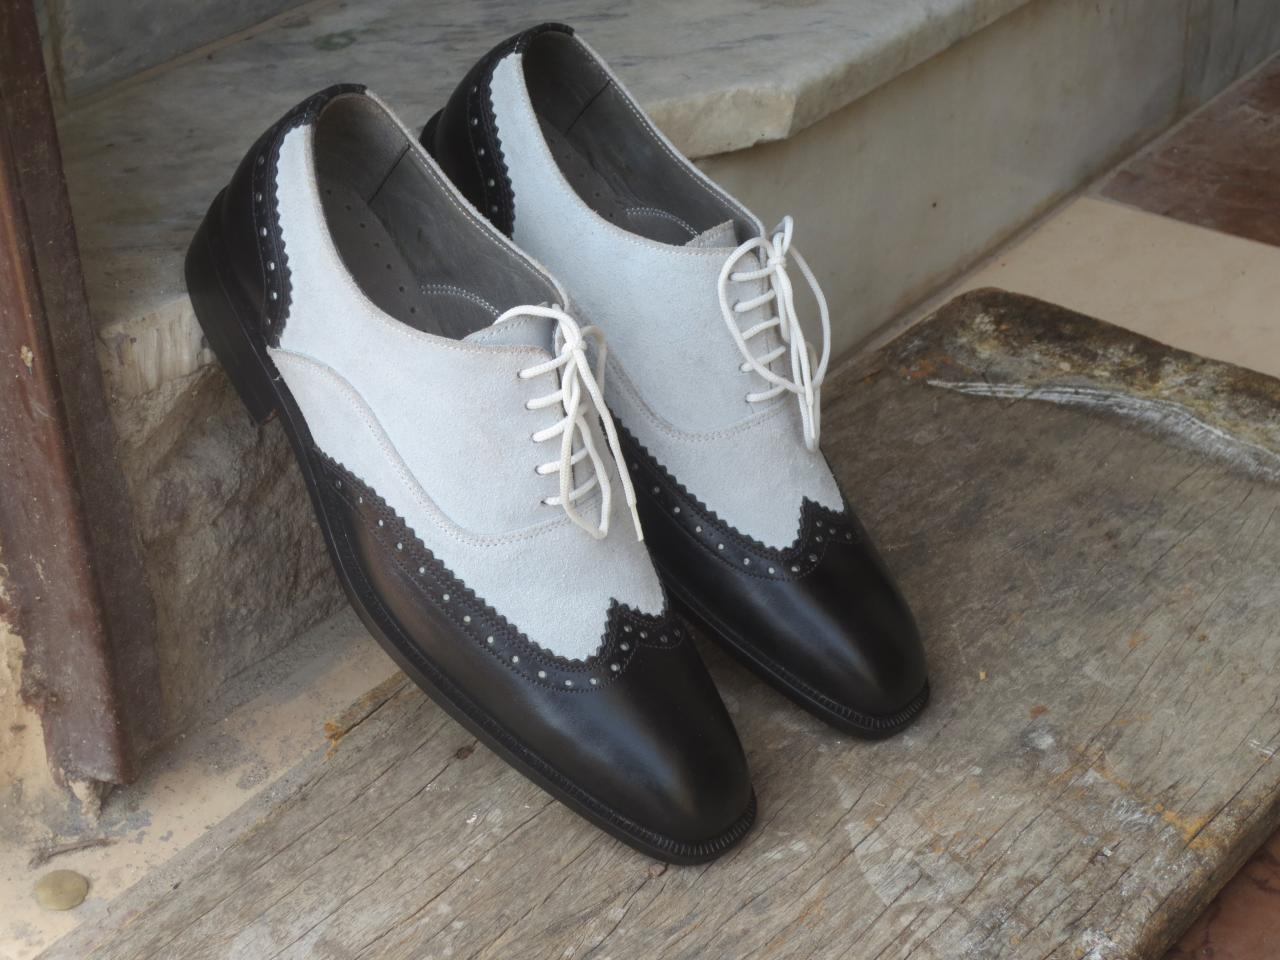 Handmade White Black Leather Suede Shoes, Men's Lace Up Wing Tip Formal Shoes